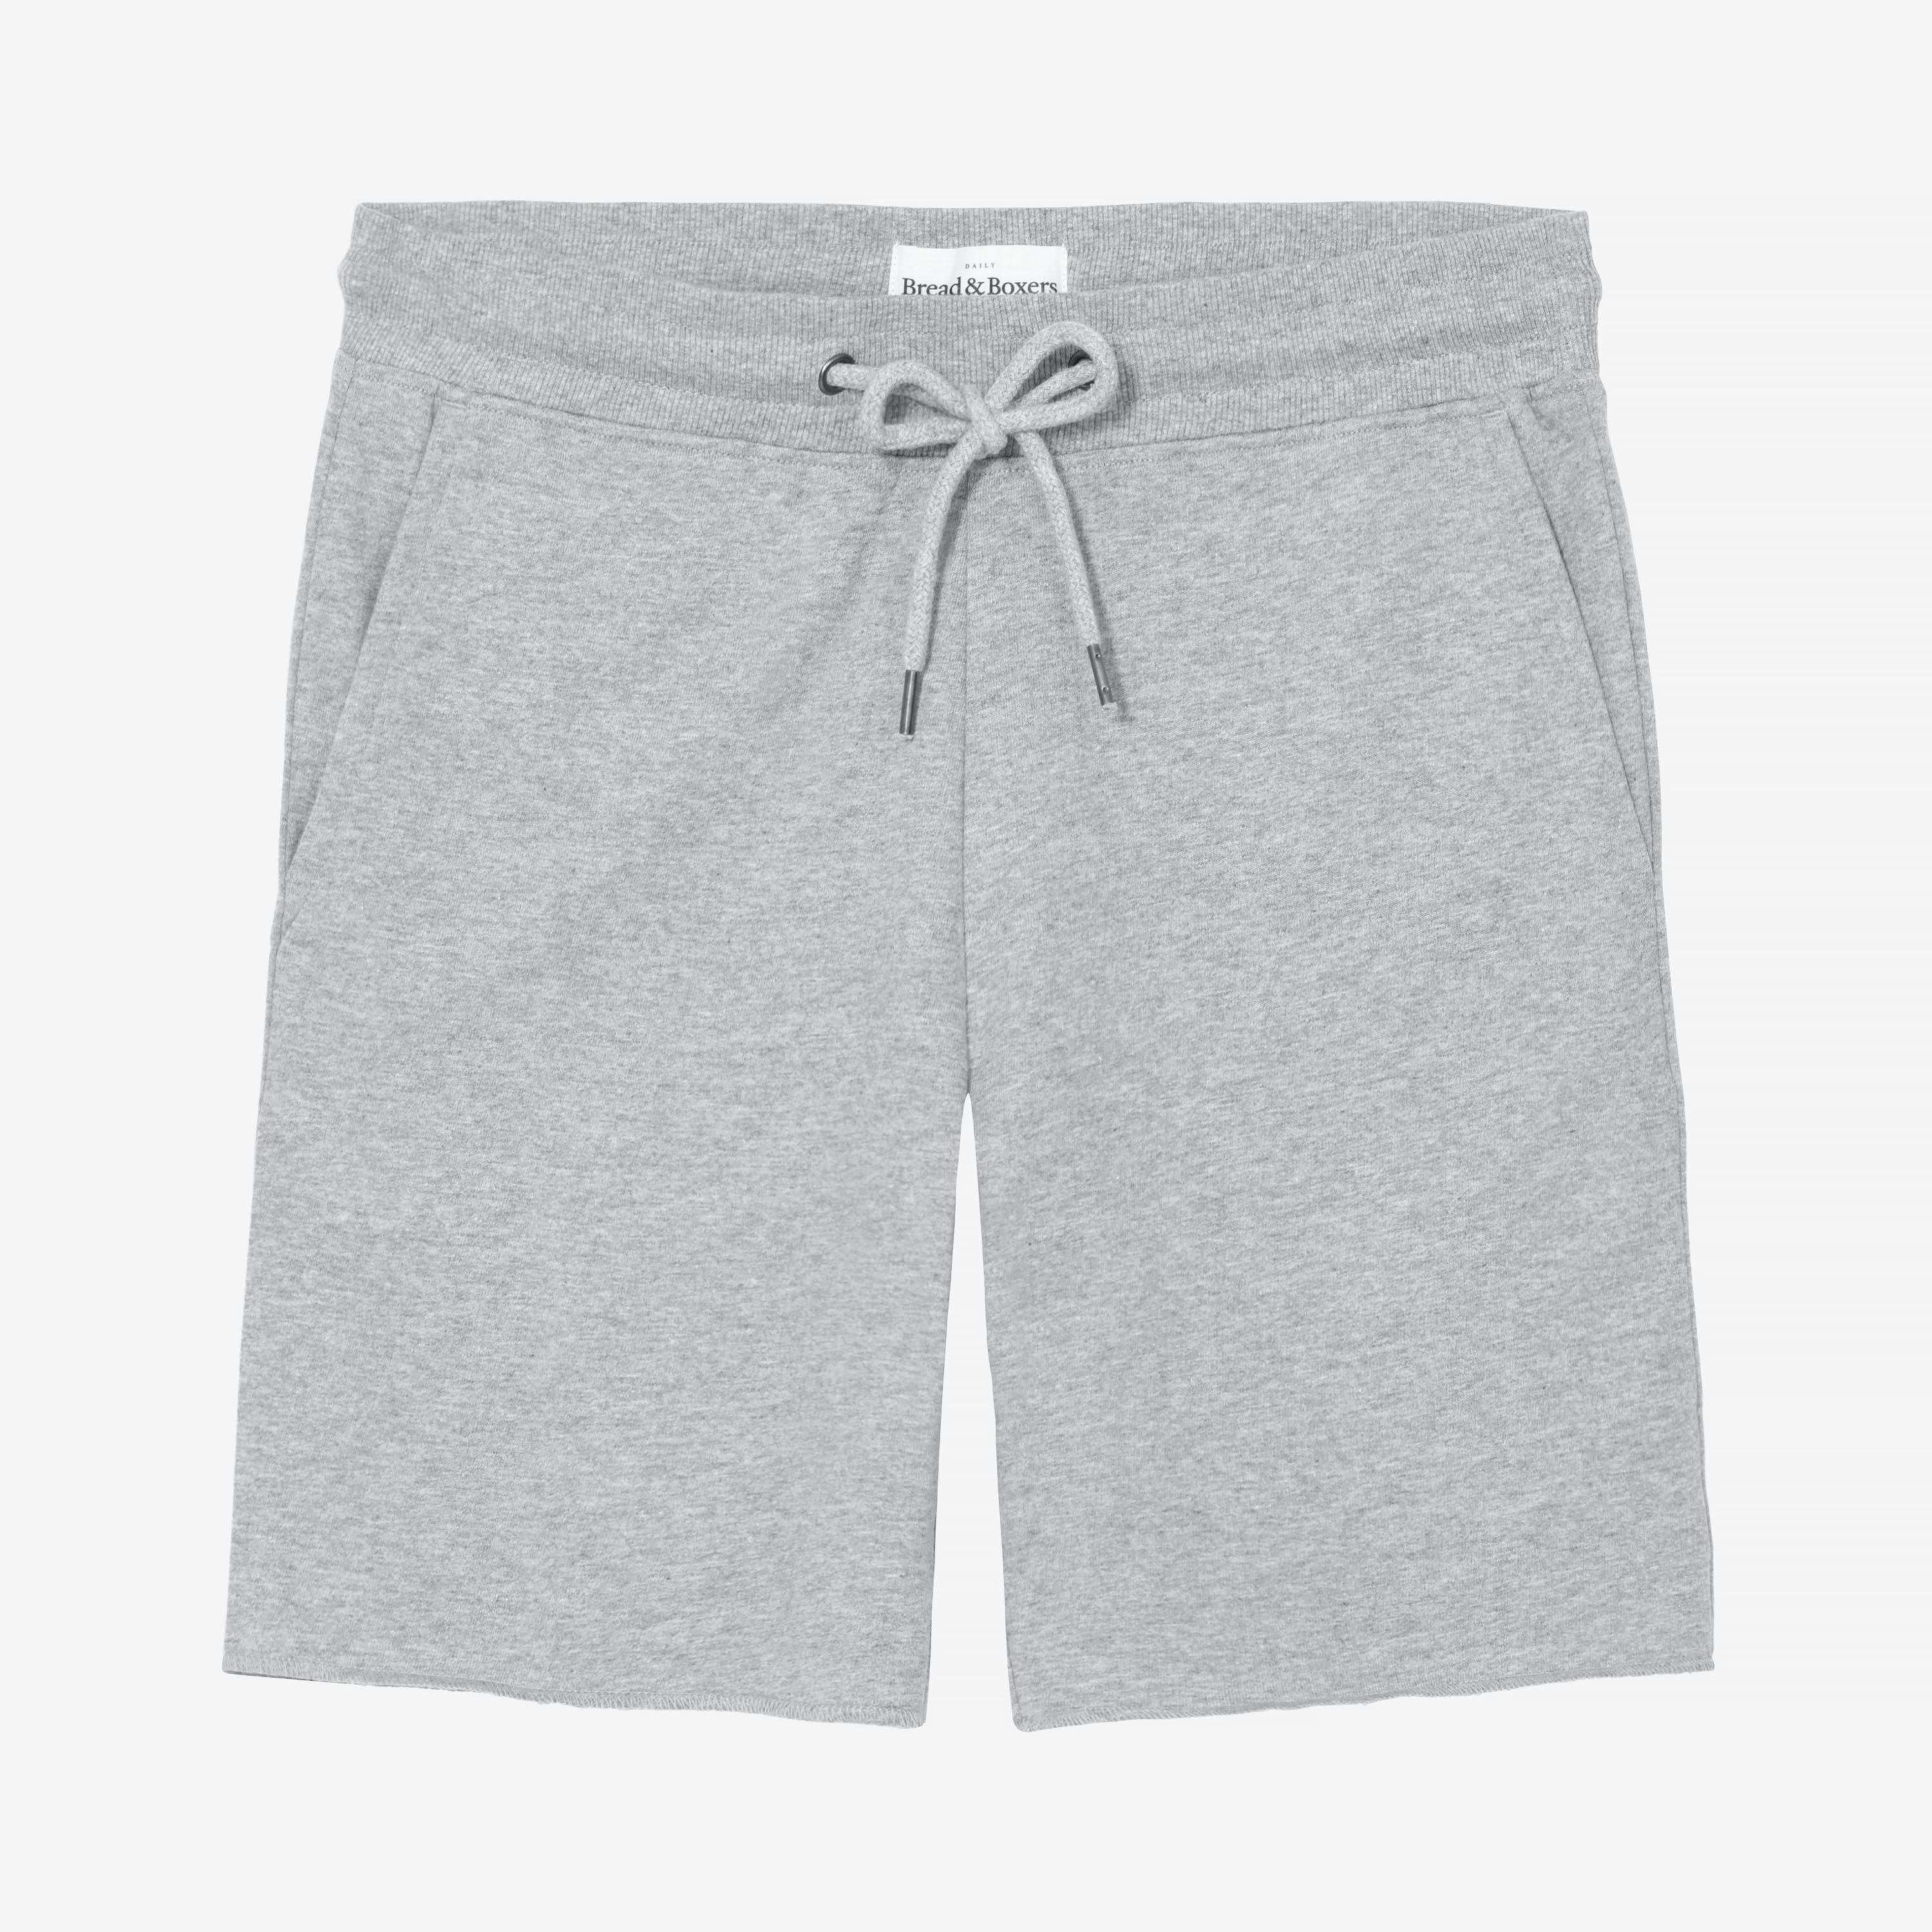 424203_Man_Lounge_Short_grey-melange_A